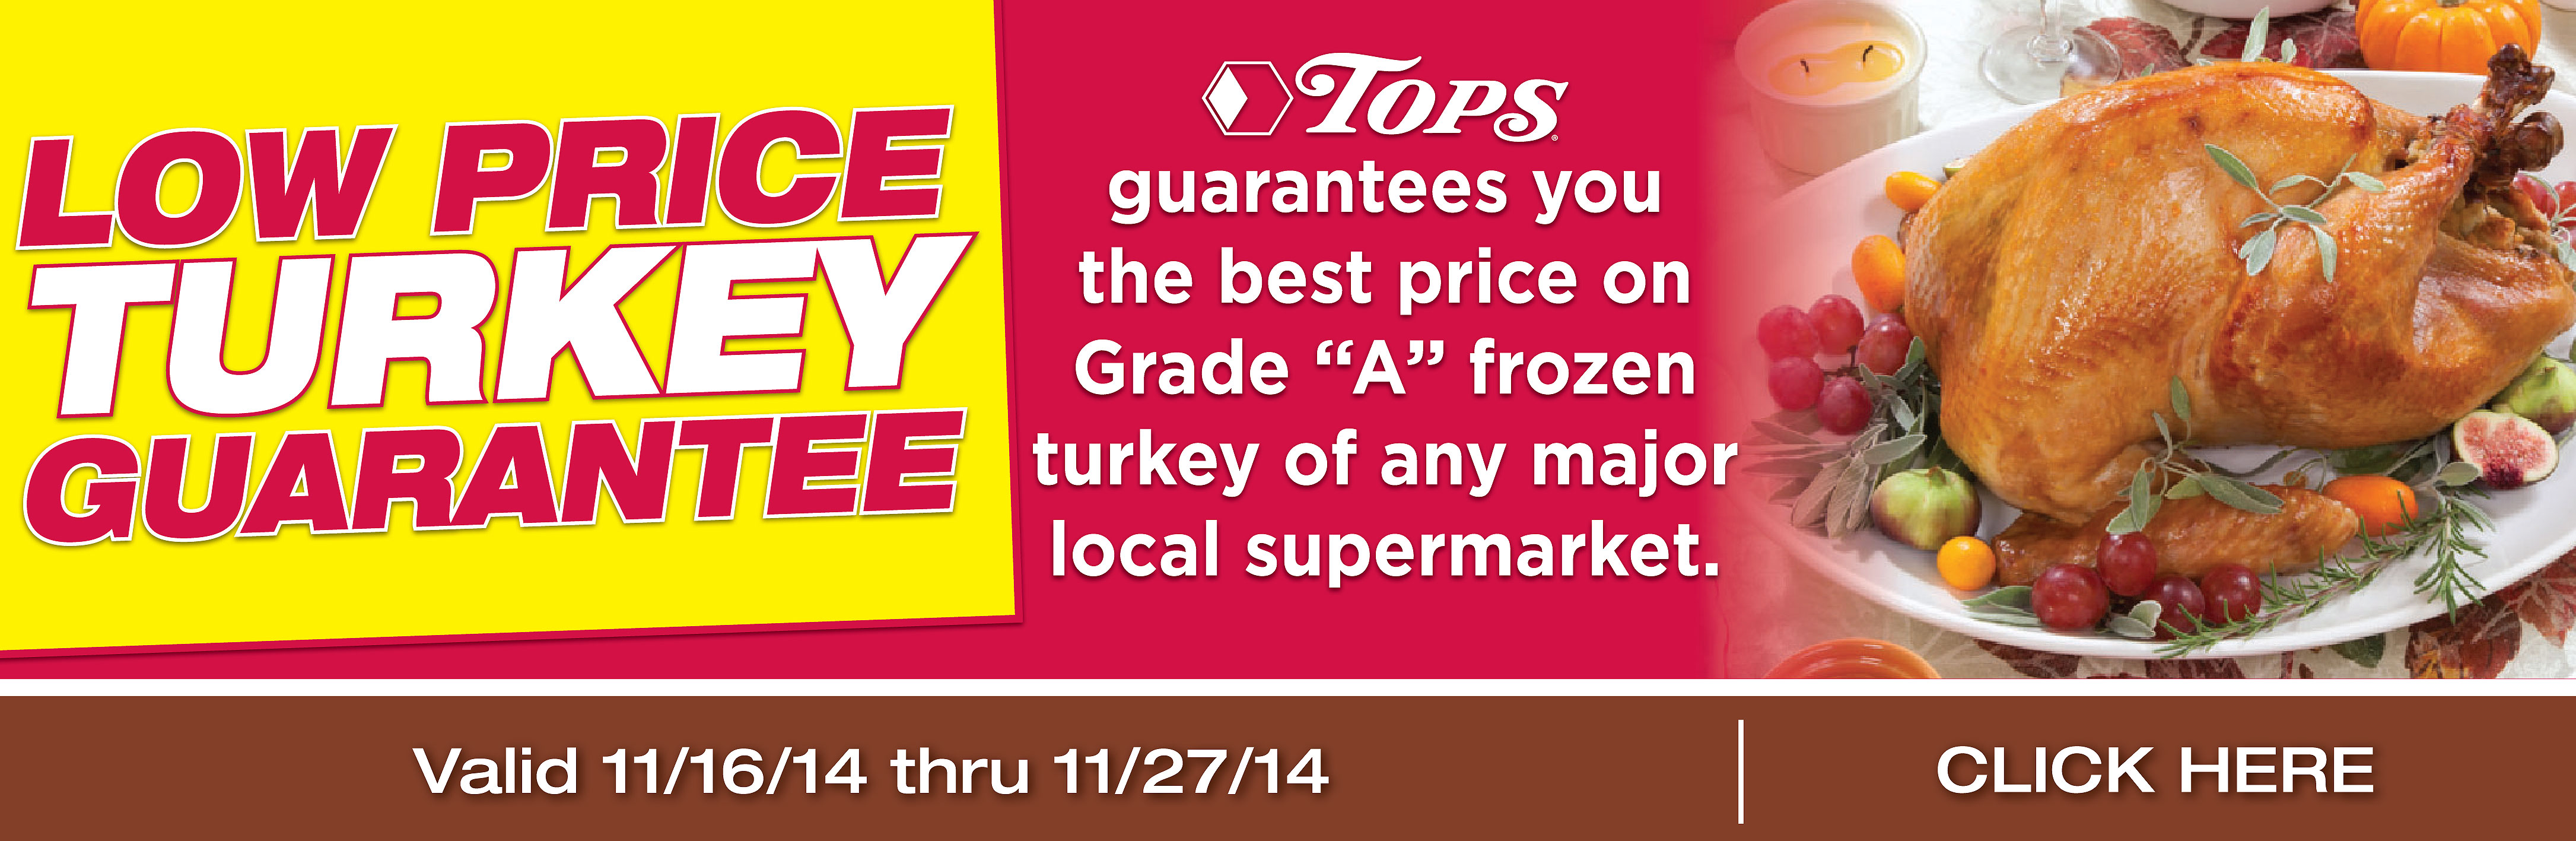 Low Turkey Price Guarantee